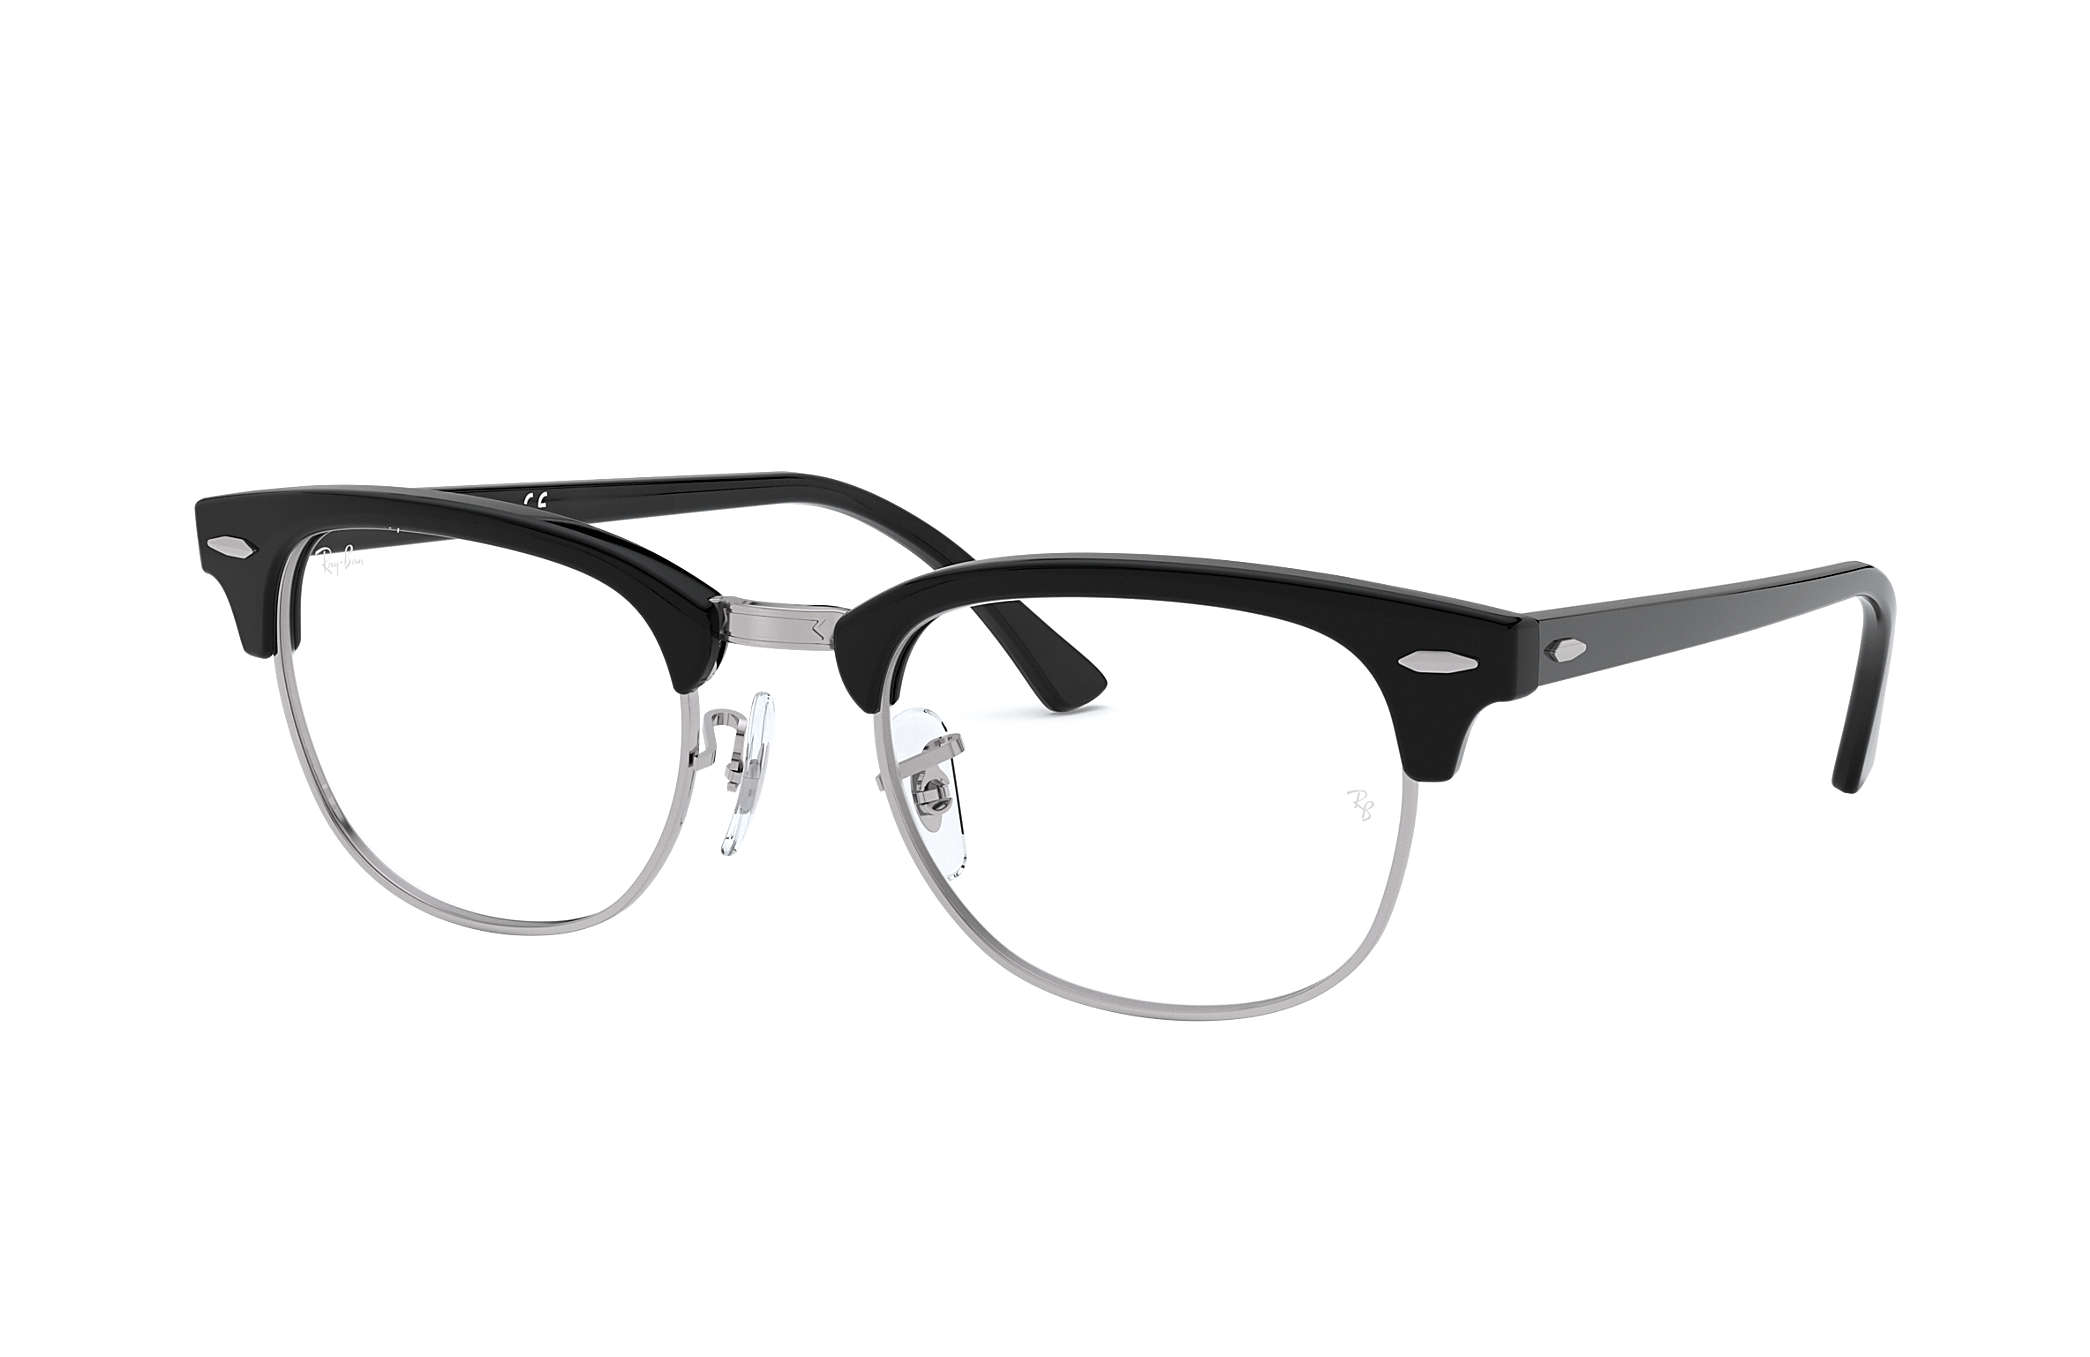 ray ban 0rx5154 clubmaster optics black optical